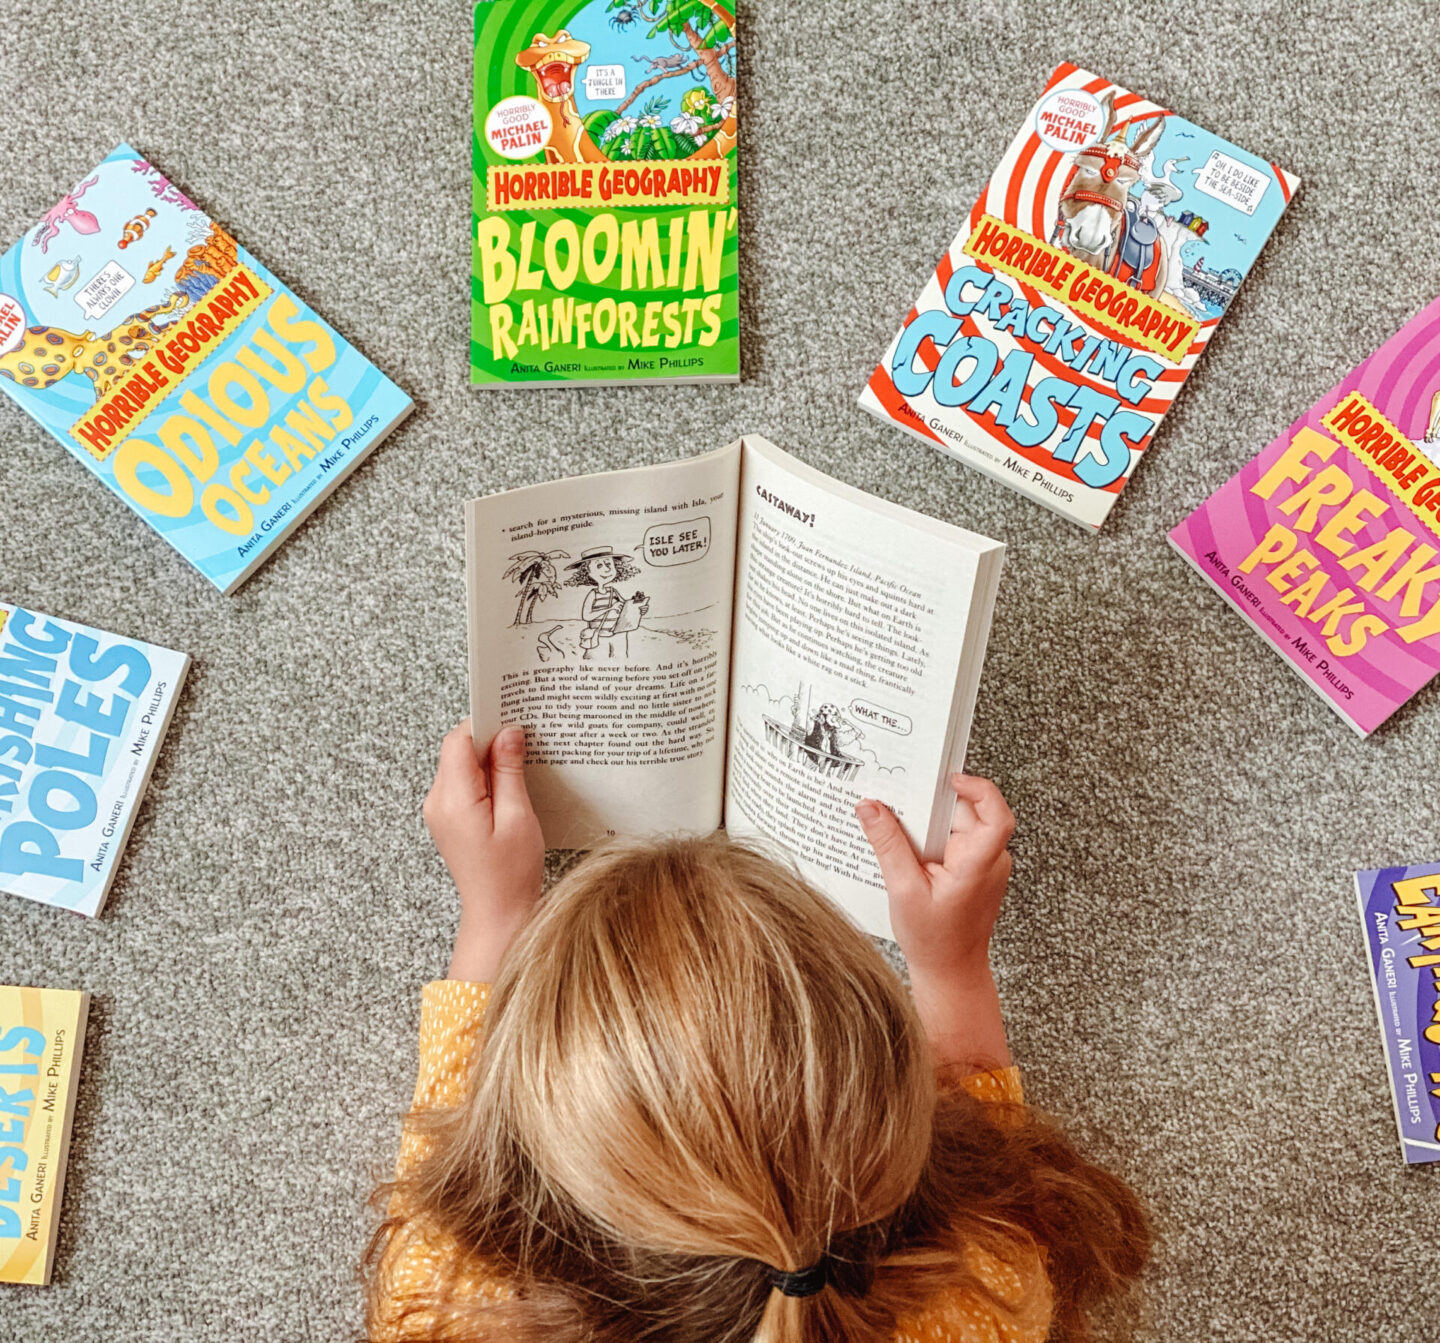 How to encourage your children to read more